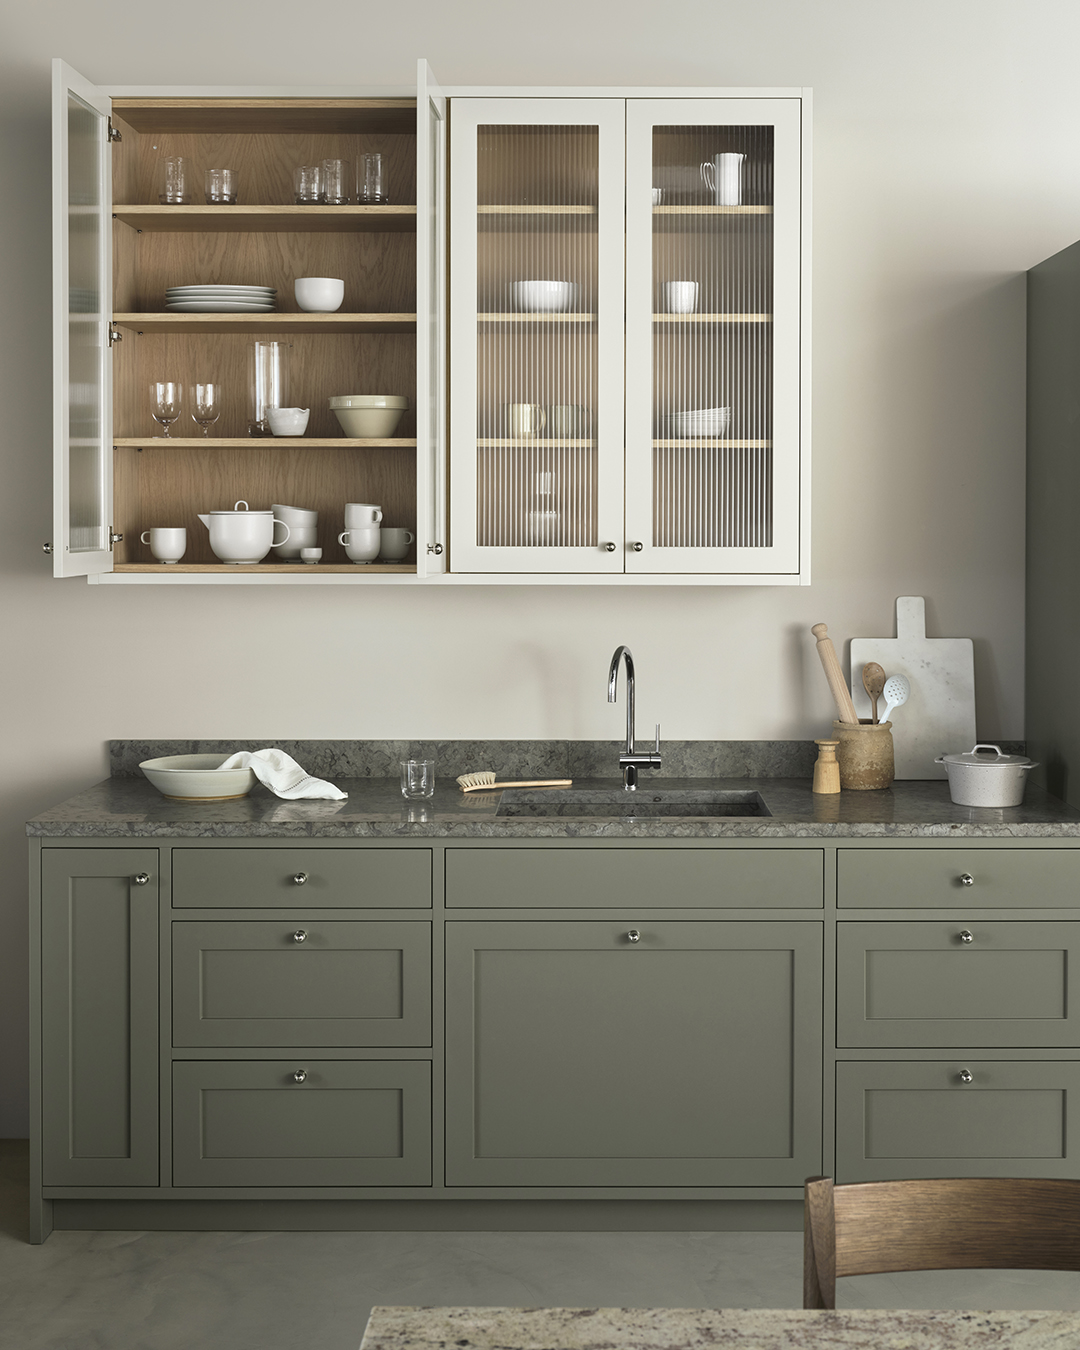 Elegant two-colour kitchen with fluted glass doors, marble worktops and classic Shaker-style units in stone grey and olive green | Eight inspiring kitchen ideas from Nordiska Kök's new showroom | These Four Walls blog